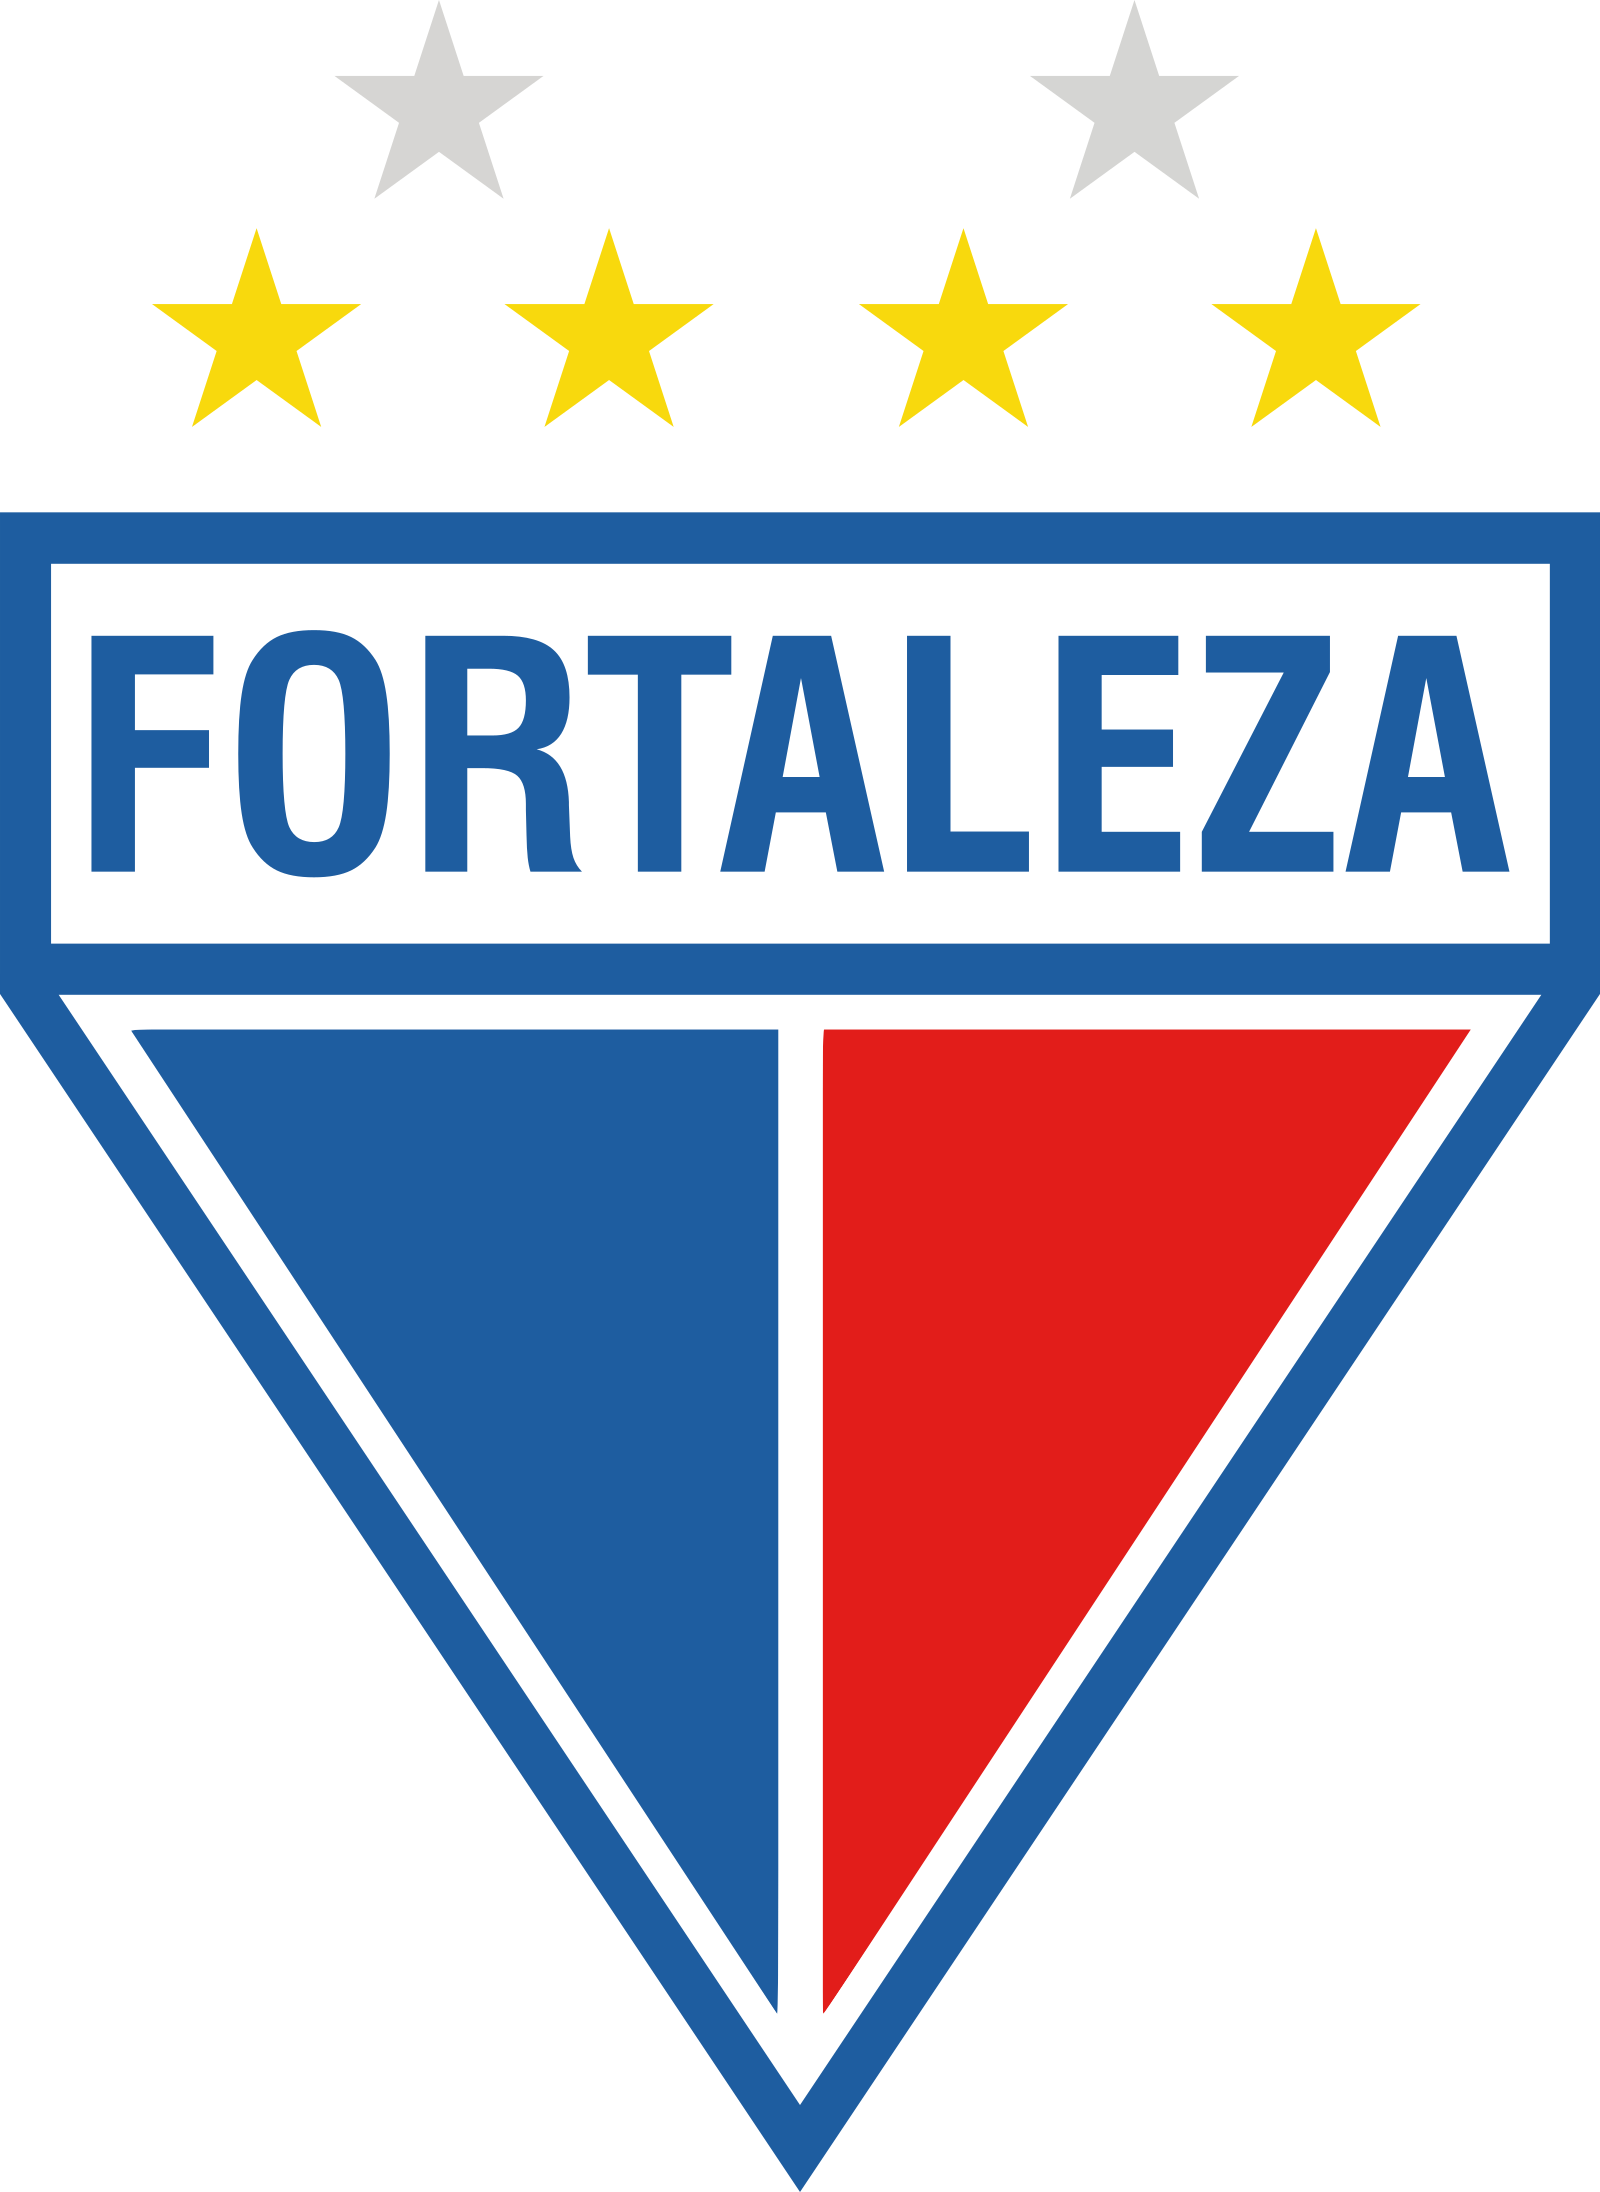 Hino do Fortaleza Esporte Clube para download mp3 e online.